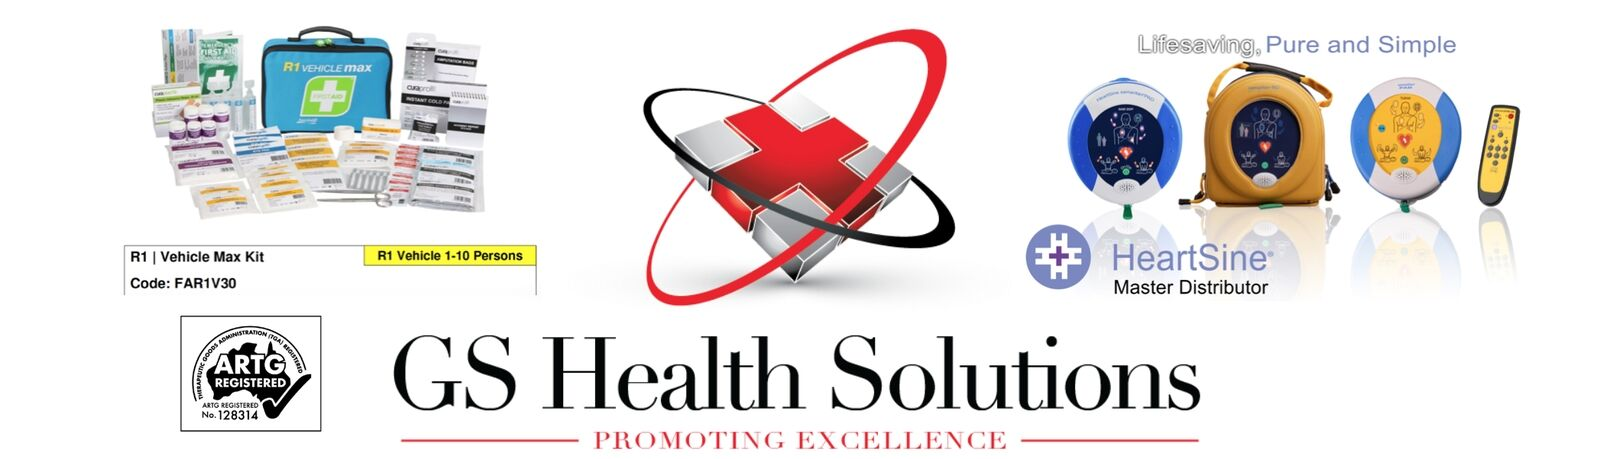 GS Health Solutions